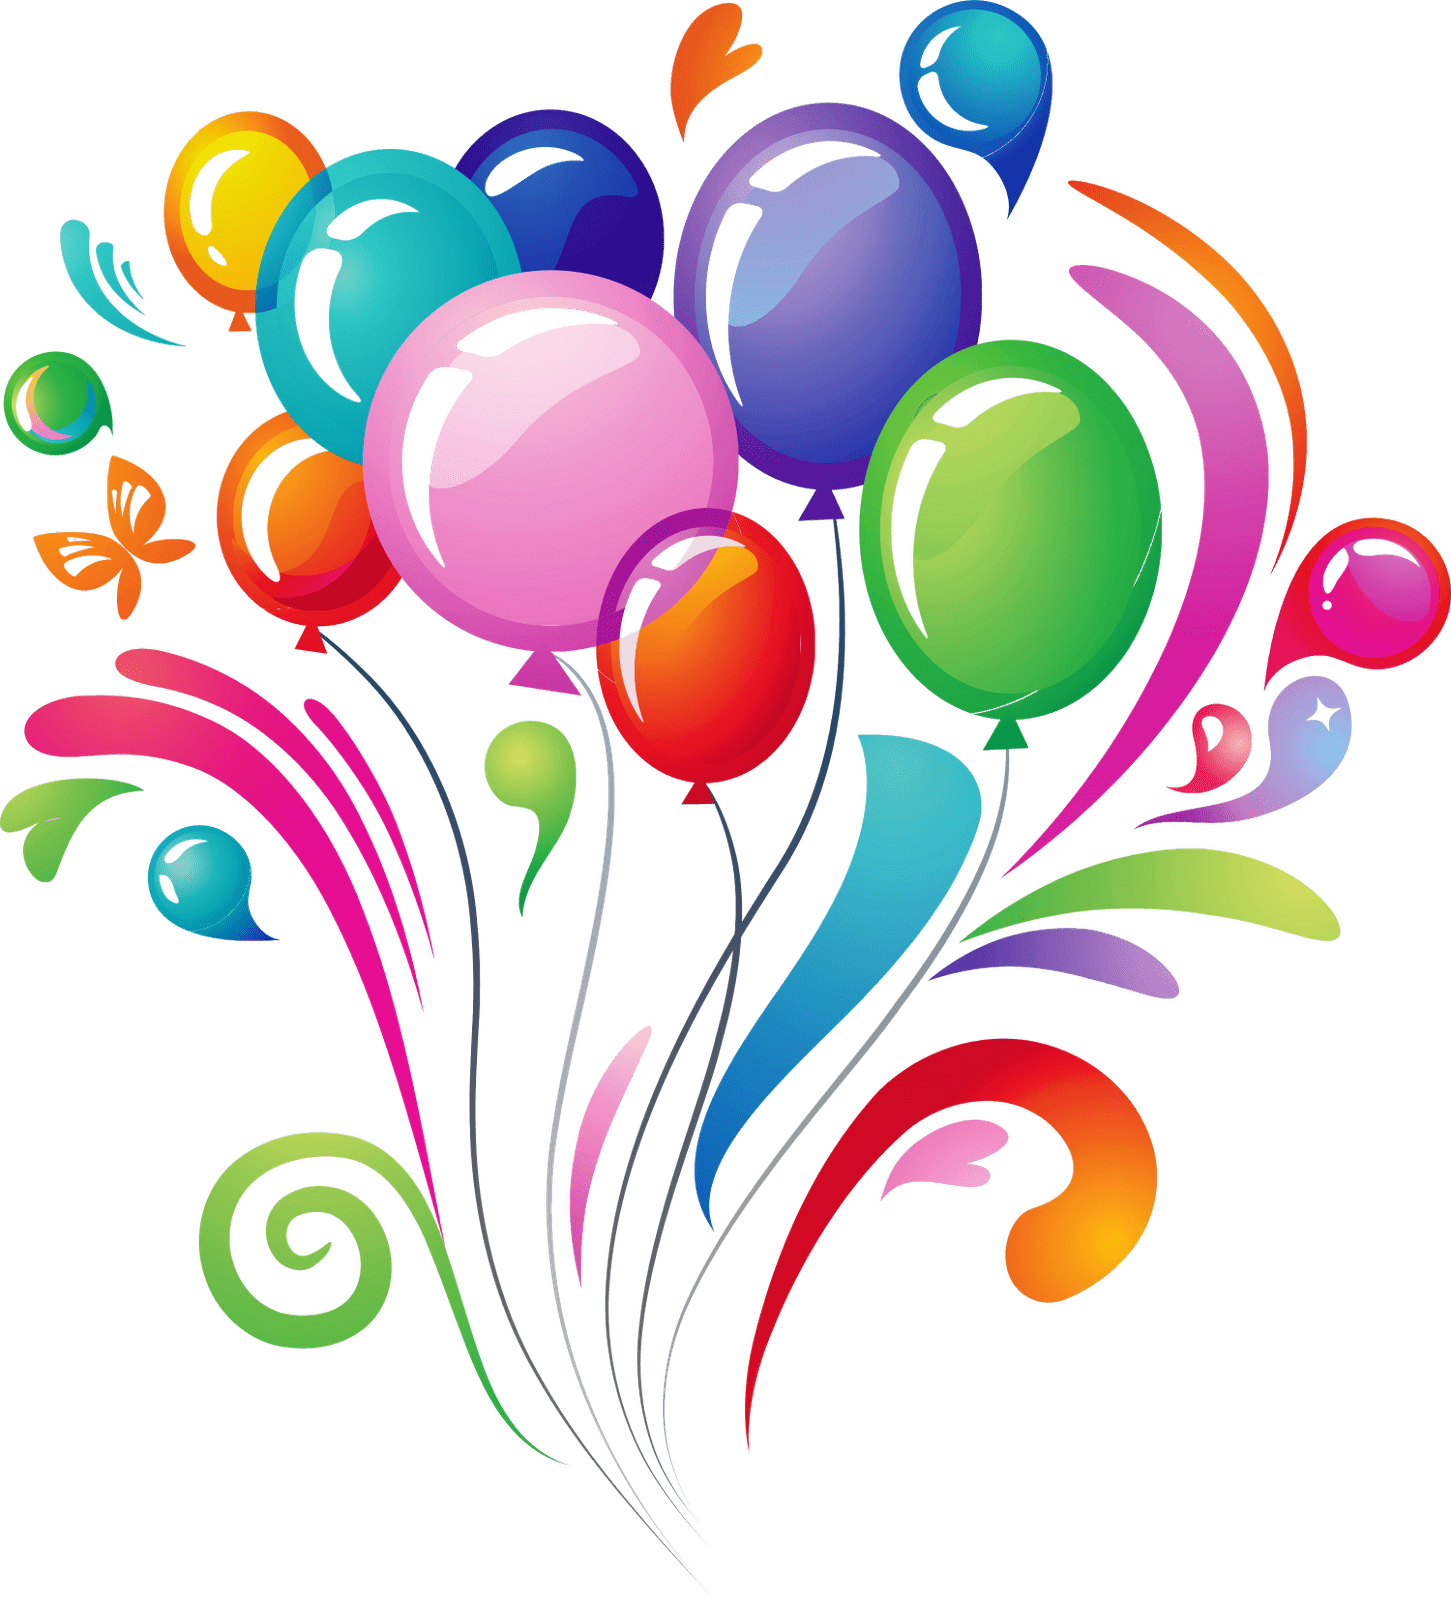 Happy birthday balloons png transparent background